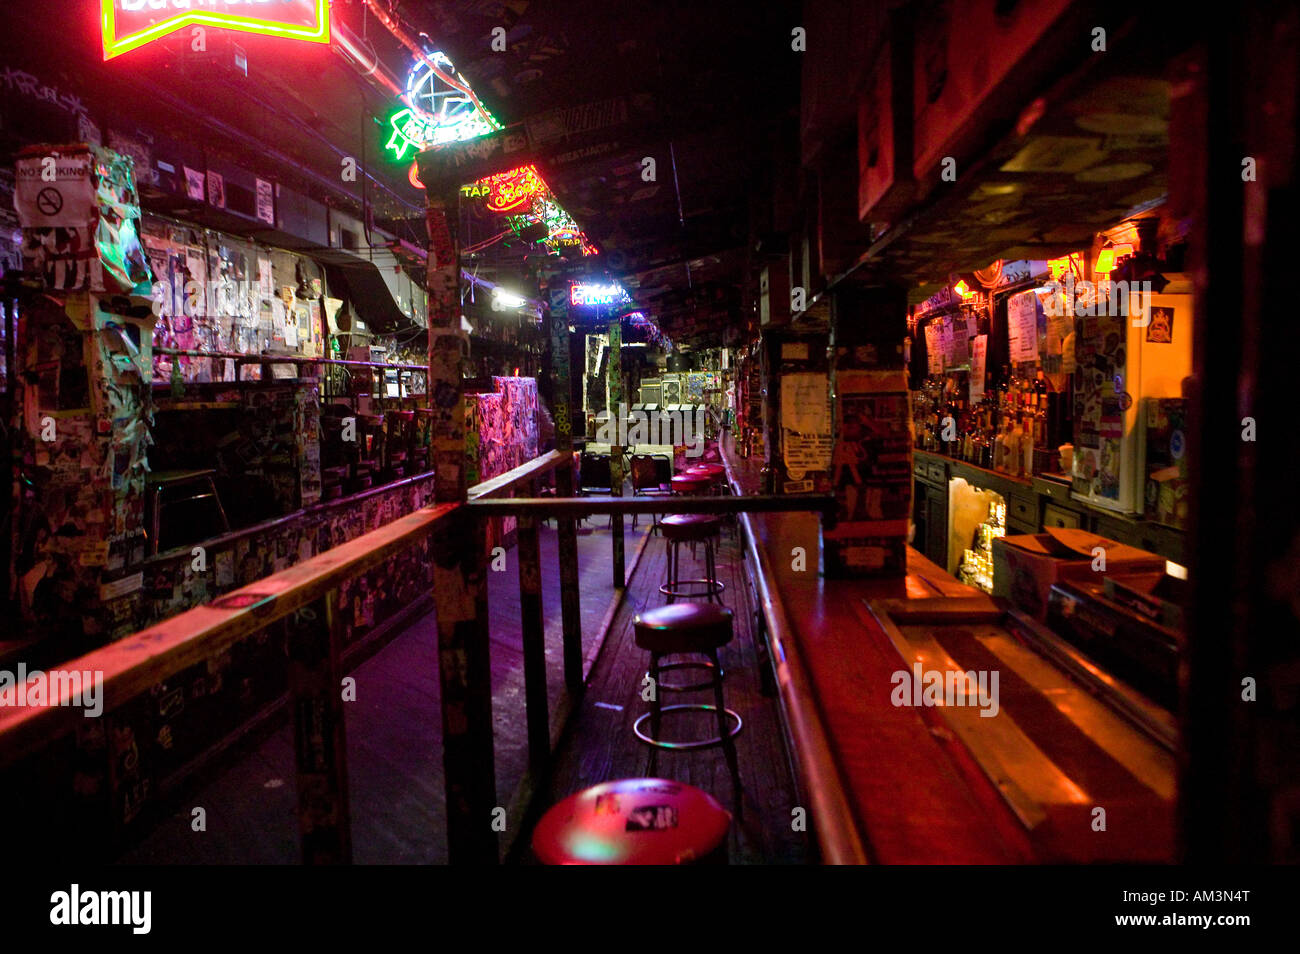 View Inside The Cbgb Club On The Bowery In New York City